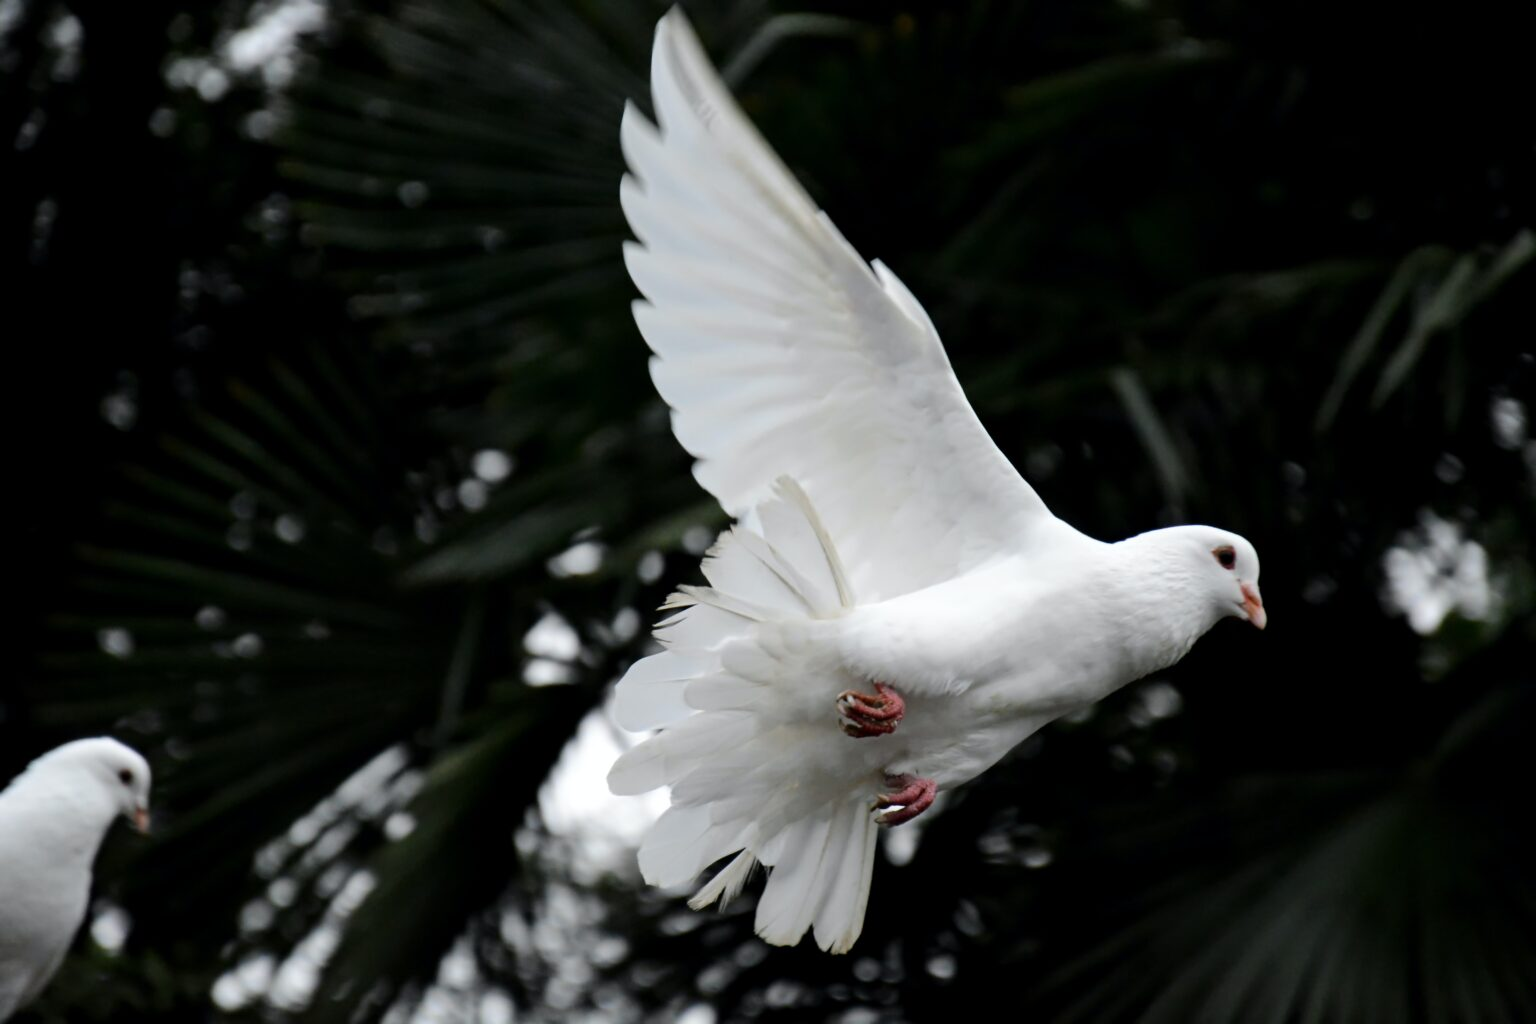 Photograph of a white dove in flight against a dark green background of foliage